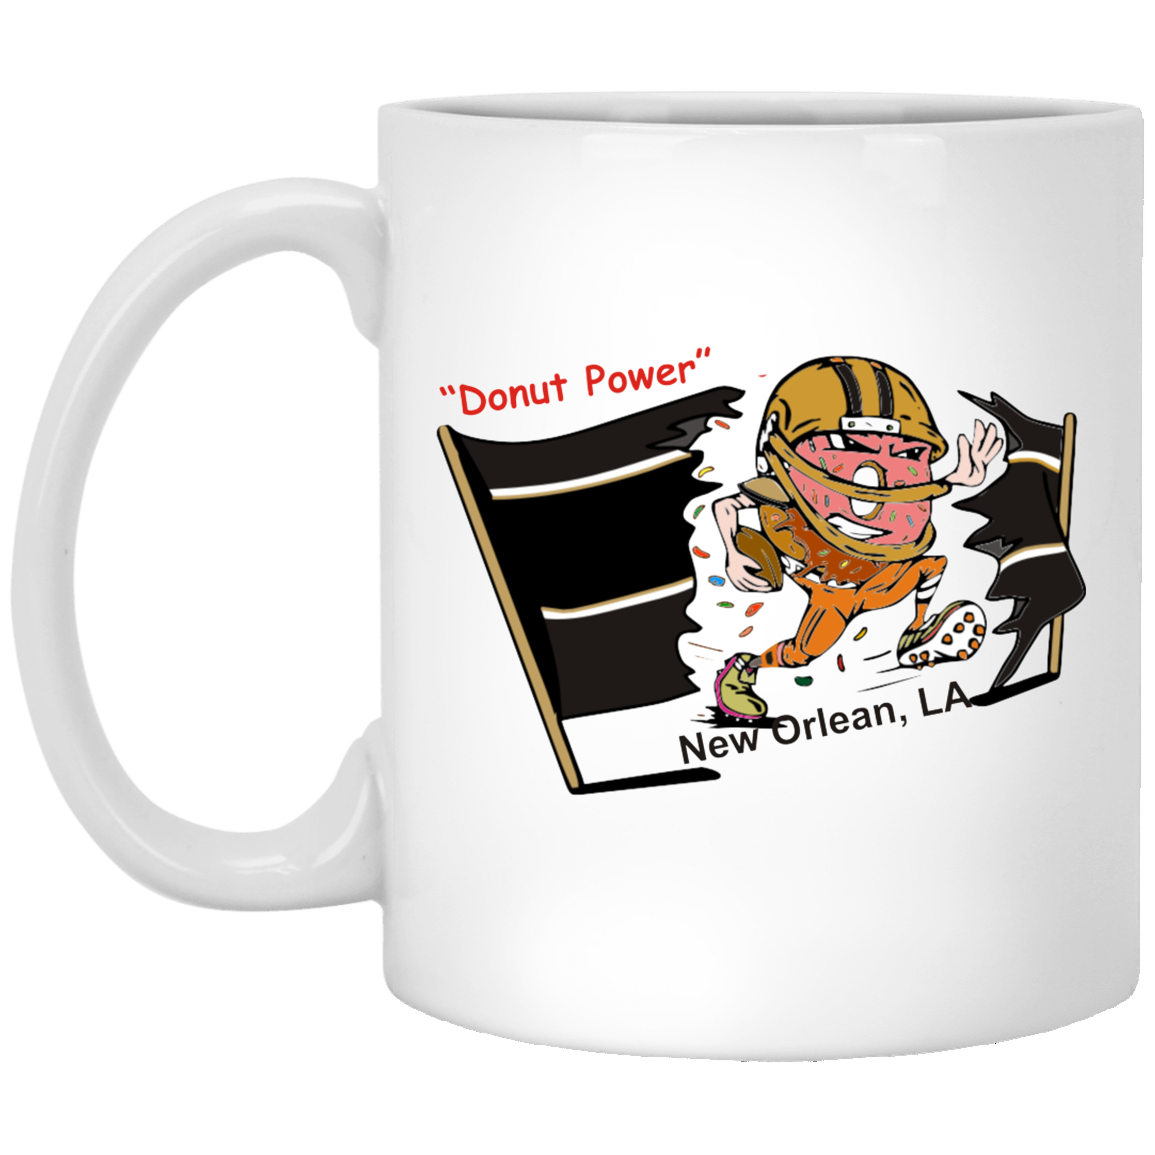 New Orleans XP8434 11 oz. White Mug